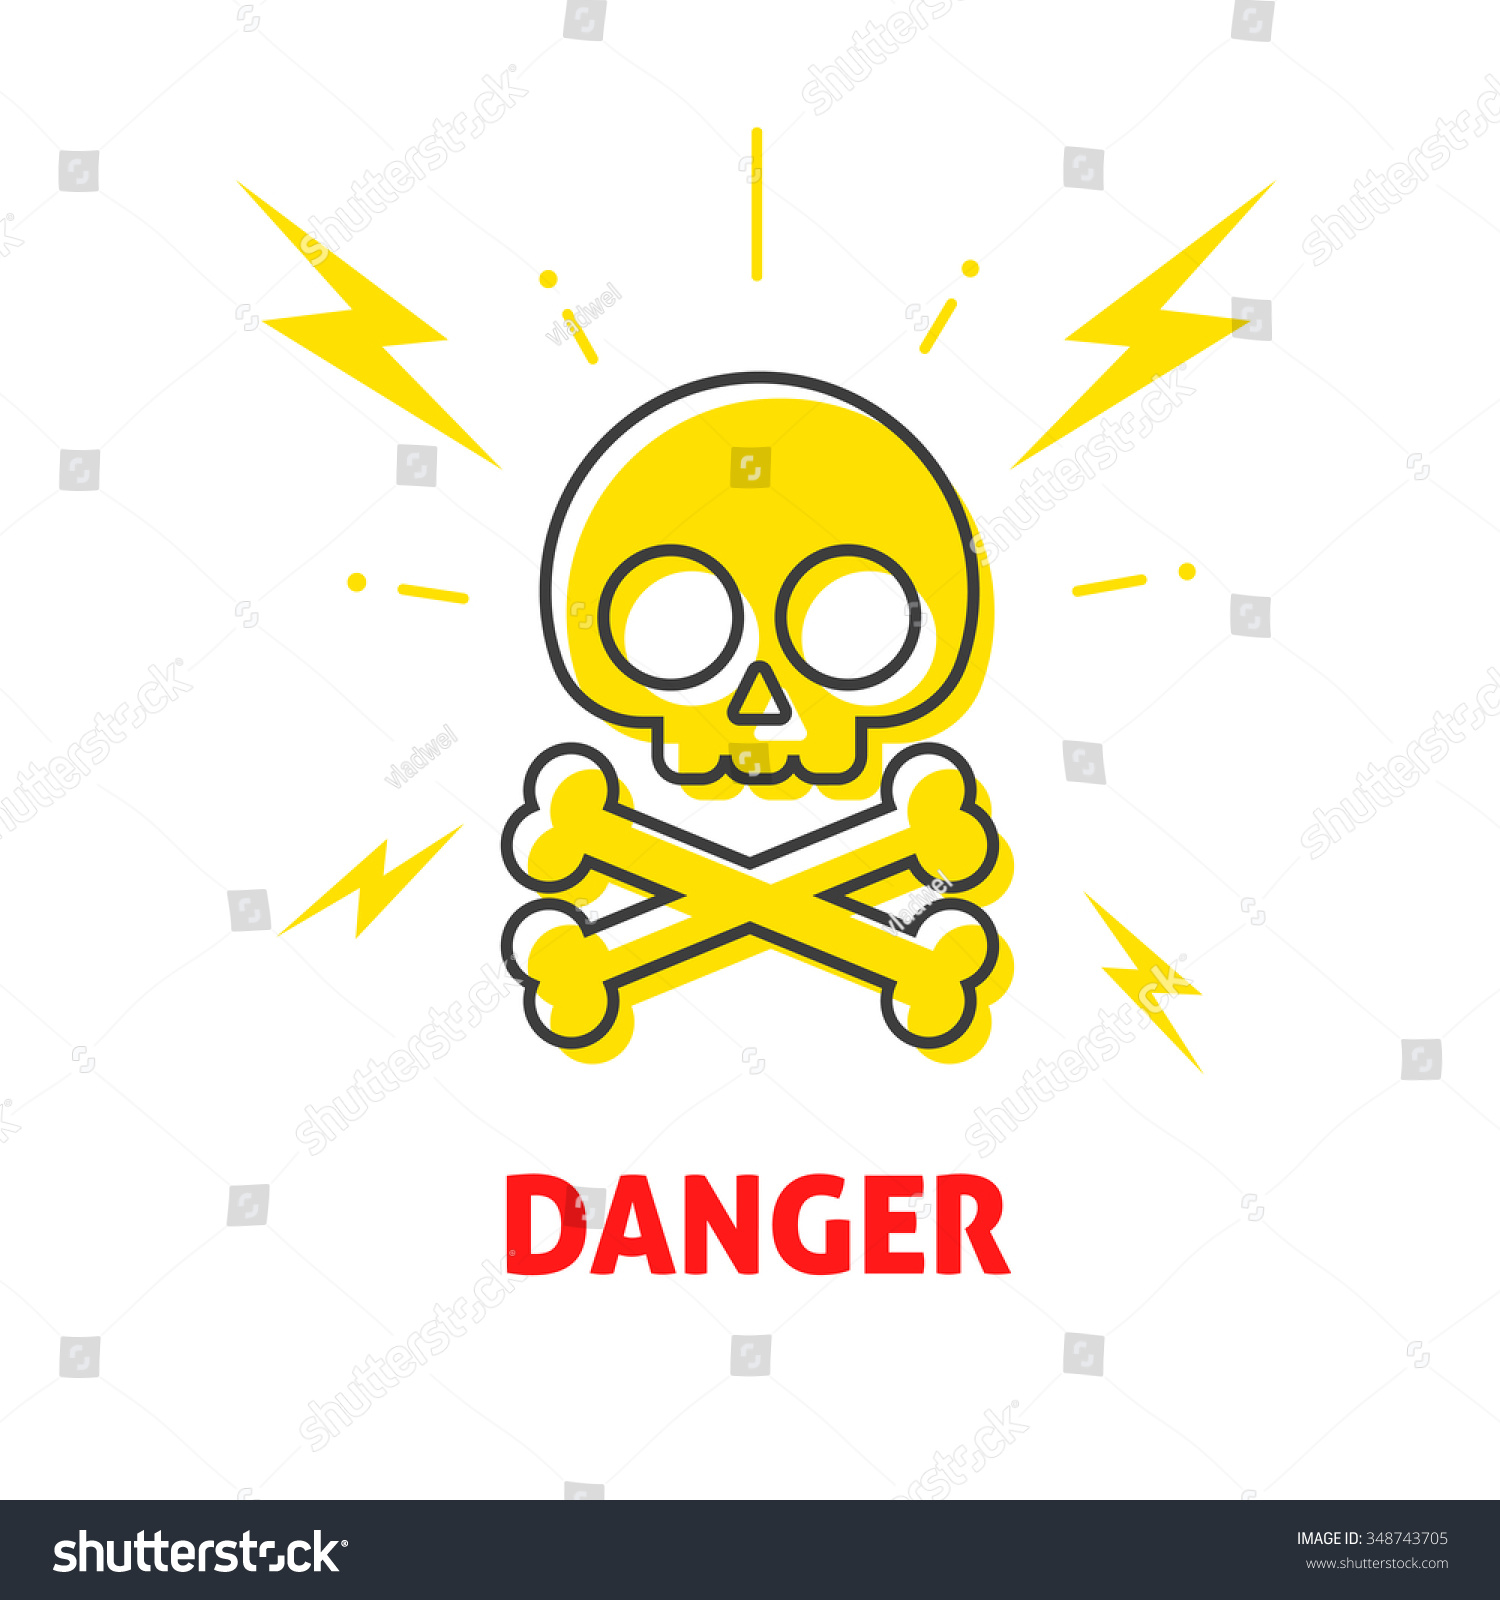 autocaddetails as well Water Fire Sprinklers Dwg Block For Autocad likewise Stock Vector Electrical Shock Hazard Sign Vector Badge Electricity Protection Warning Danger Sticker High moreover Ep300 likewise What Is A True Lighting Plan. on fire alarm design symbols